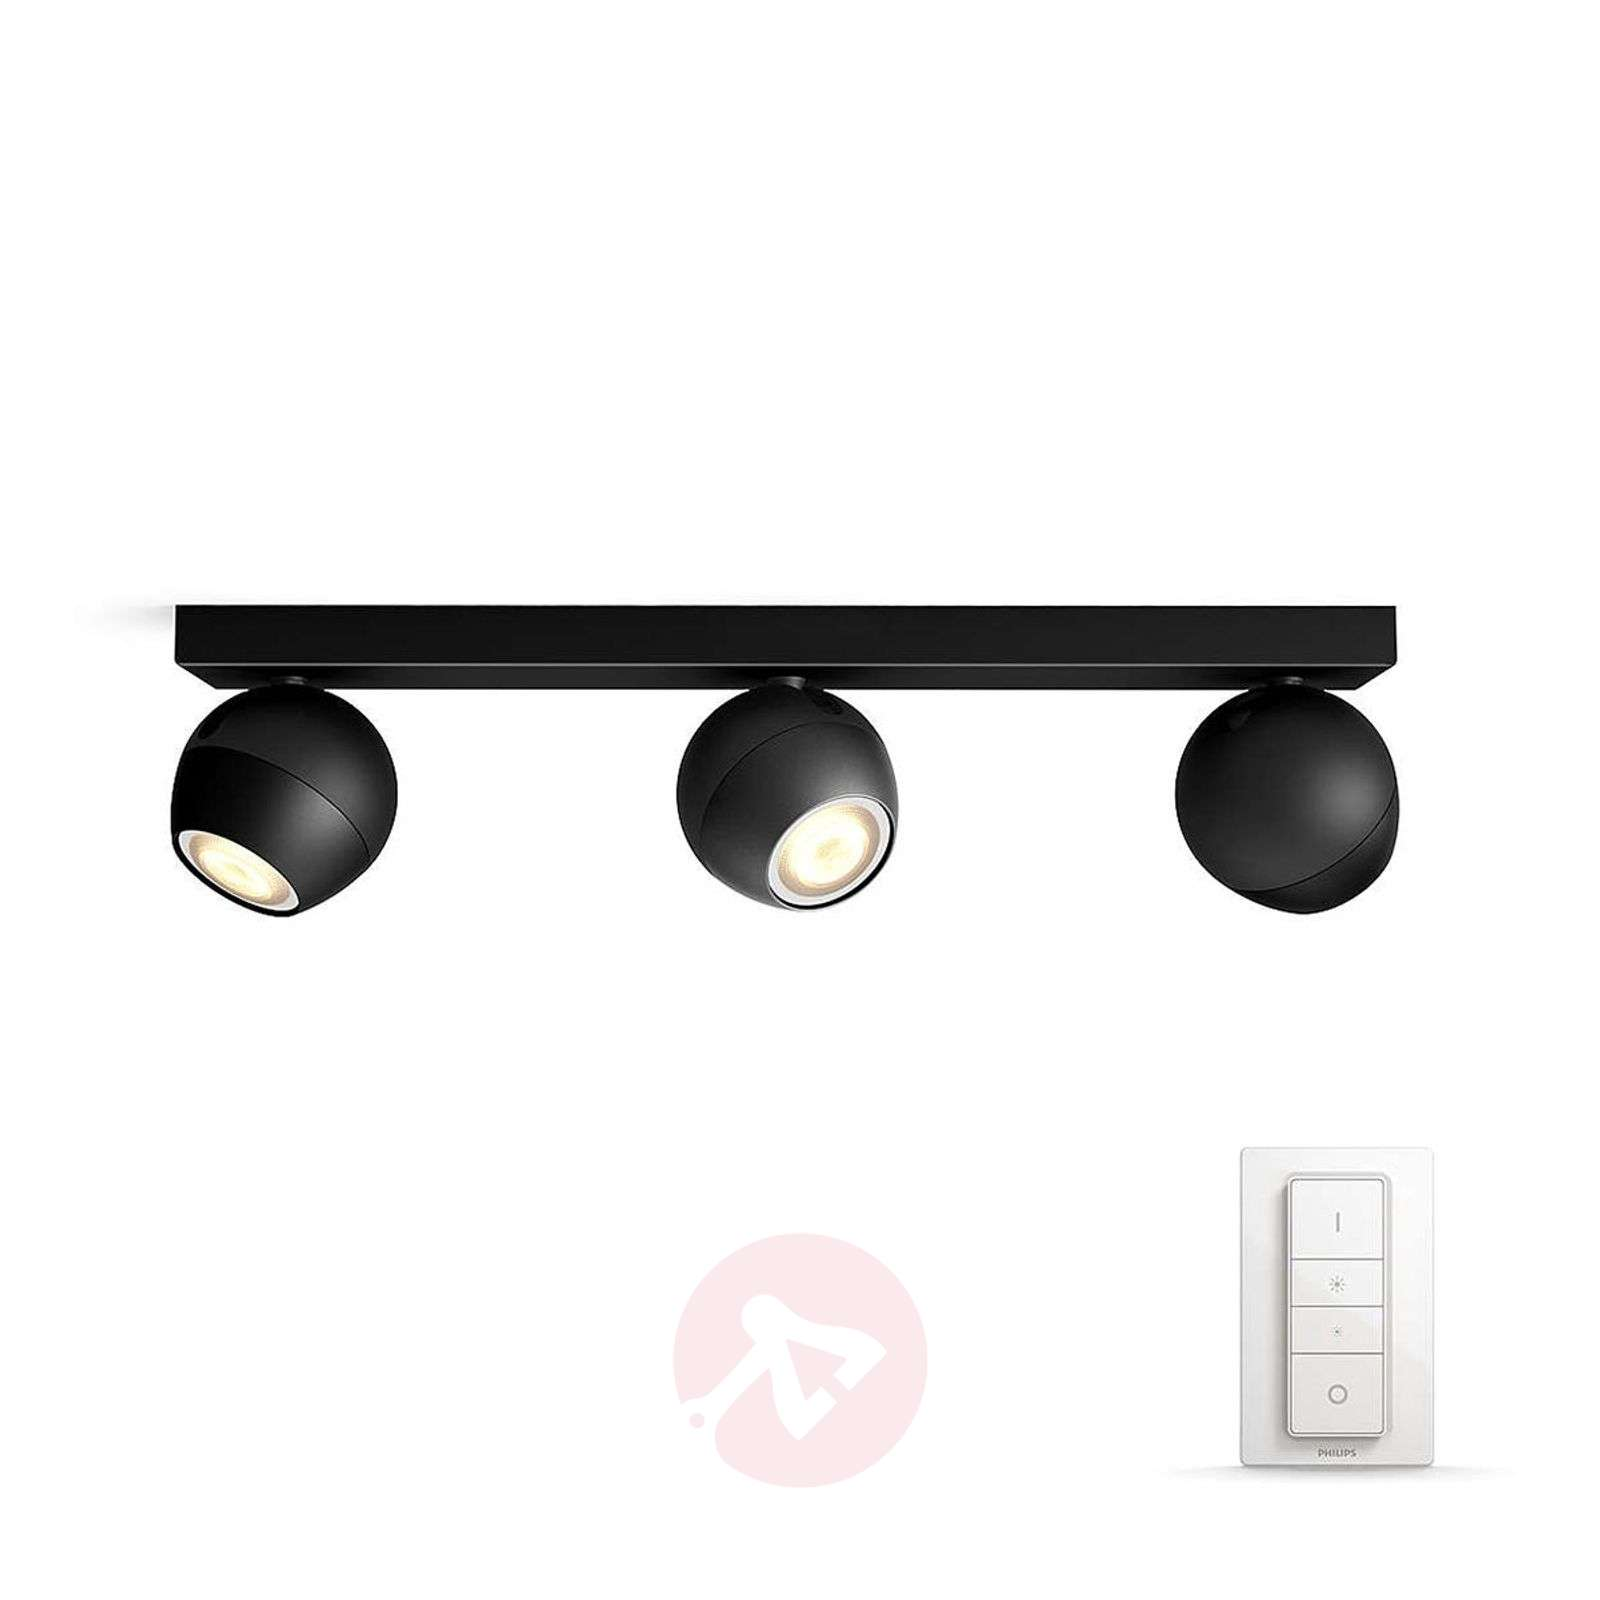 Philips Hue Buckram triplo spot LED nero-7532053-01